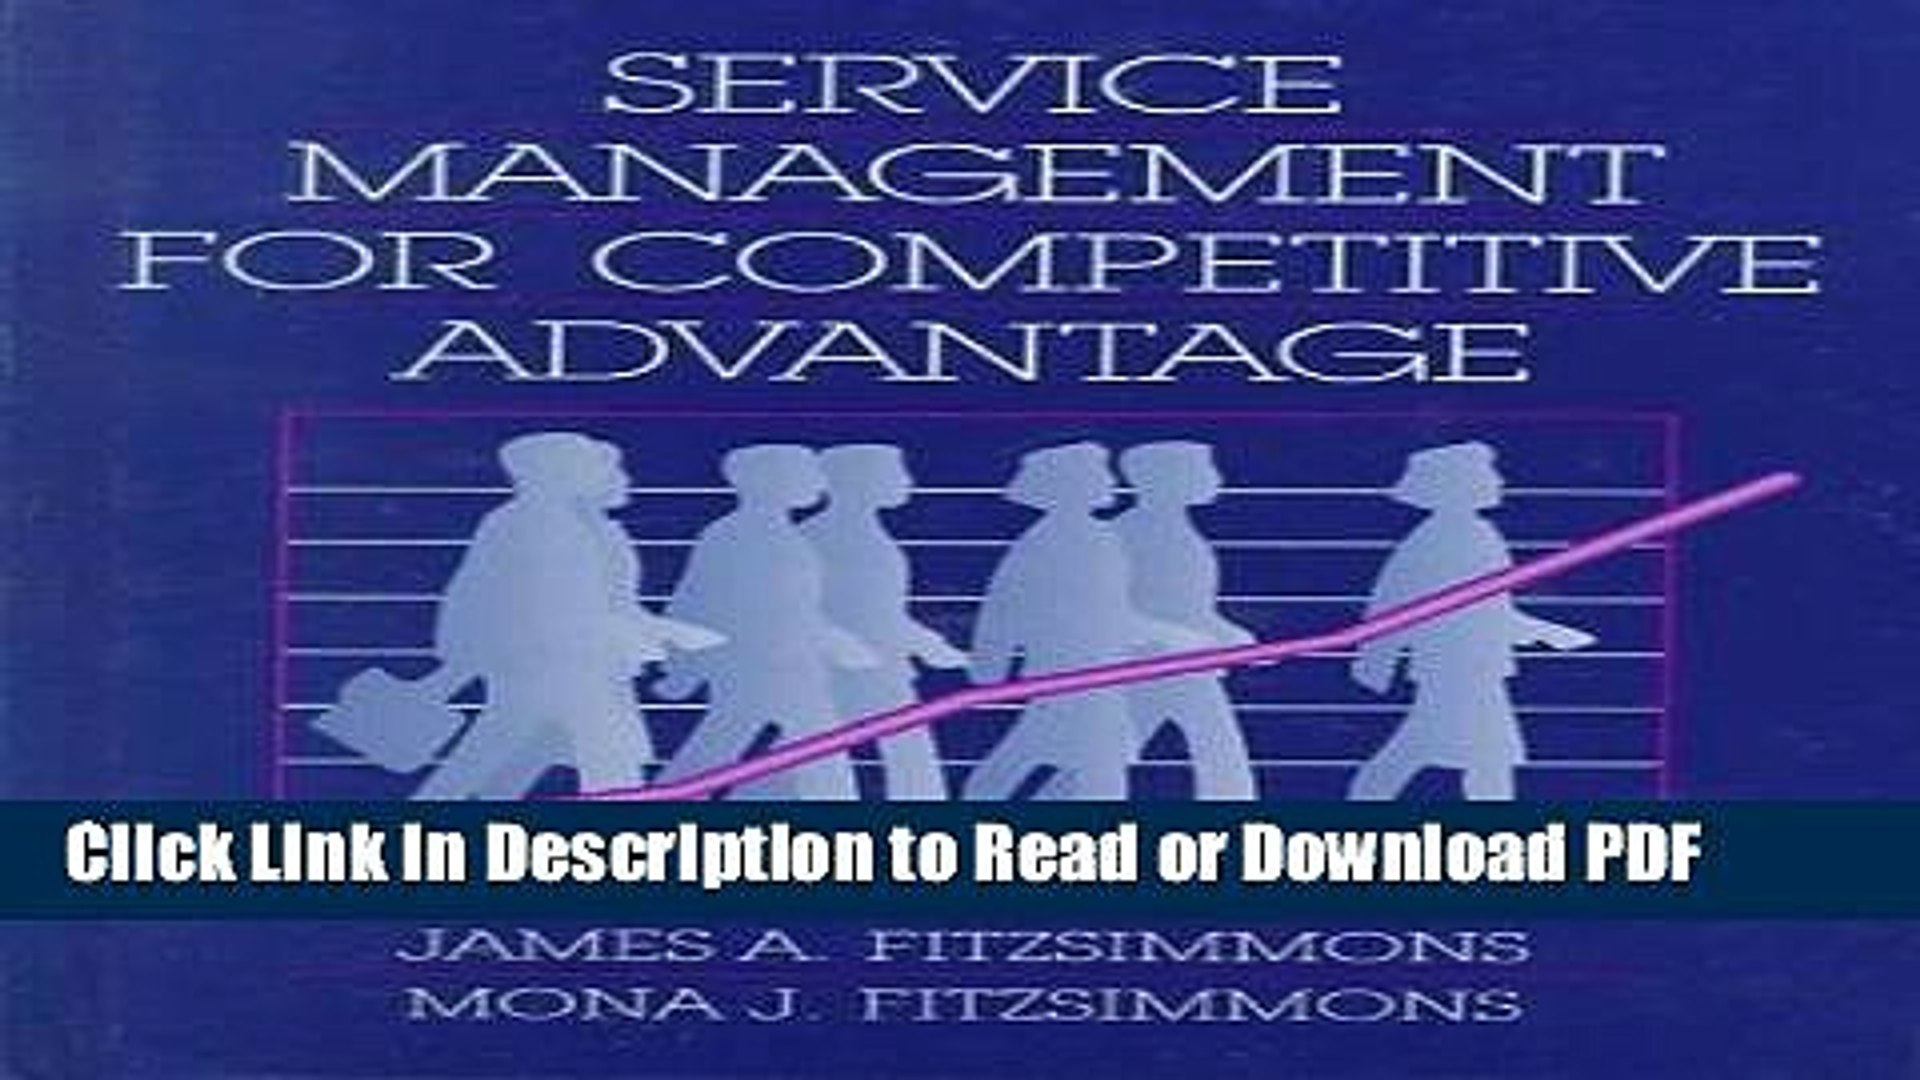 PDF Service Management for Competitive Advantage (Mcgraw Hill Series in  Management) Ebook Online